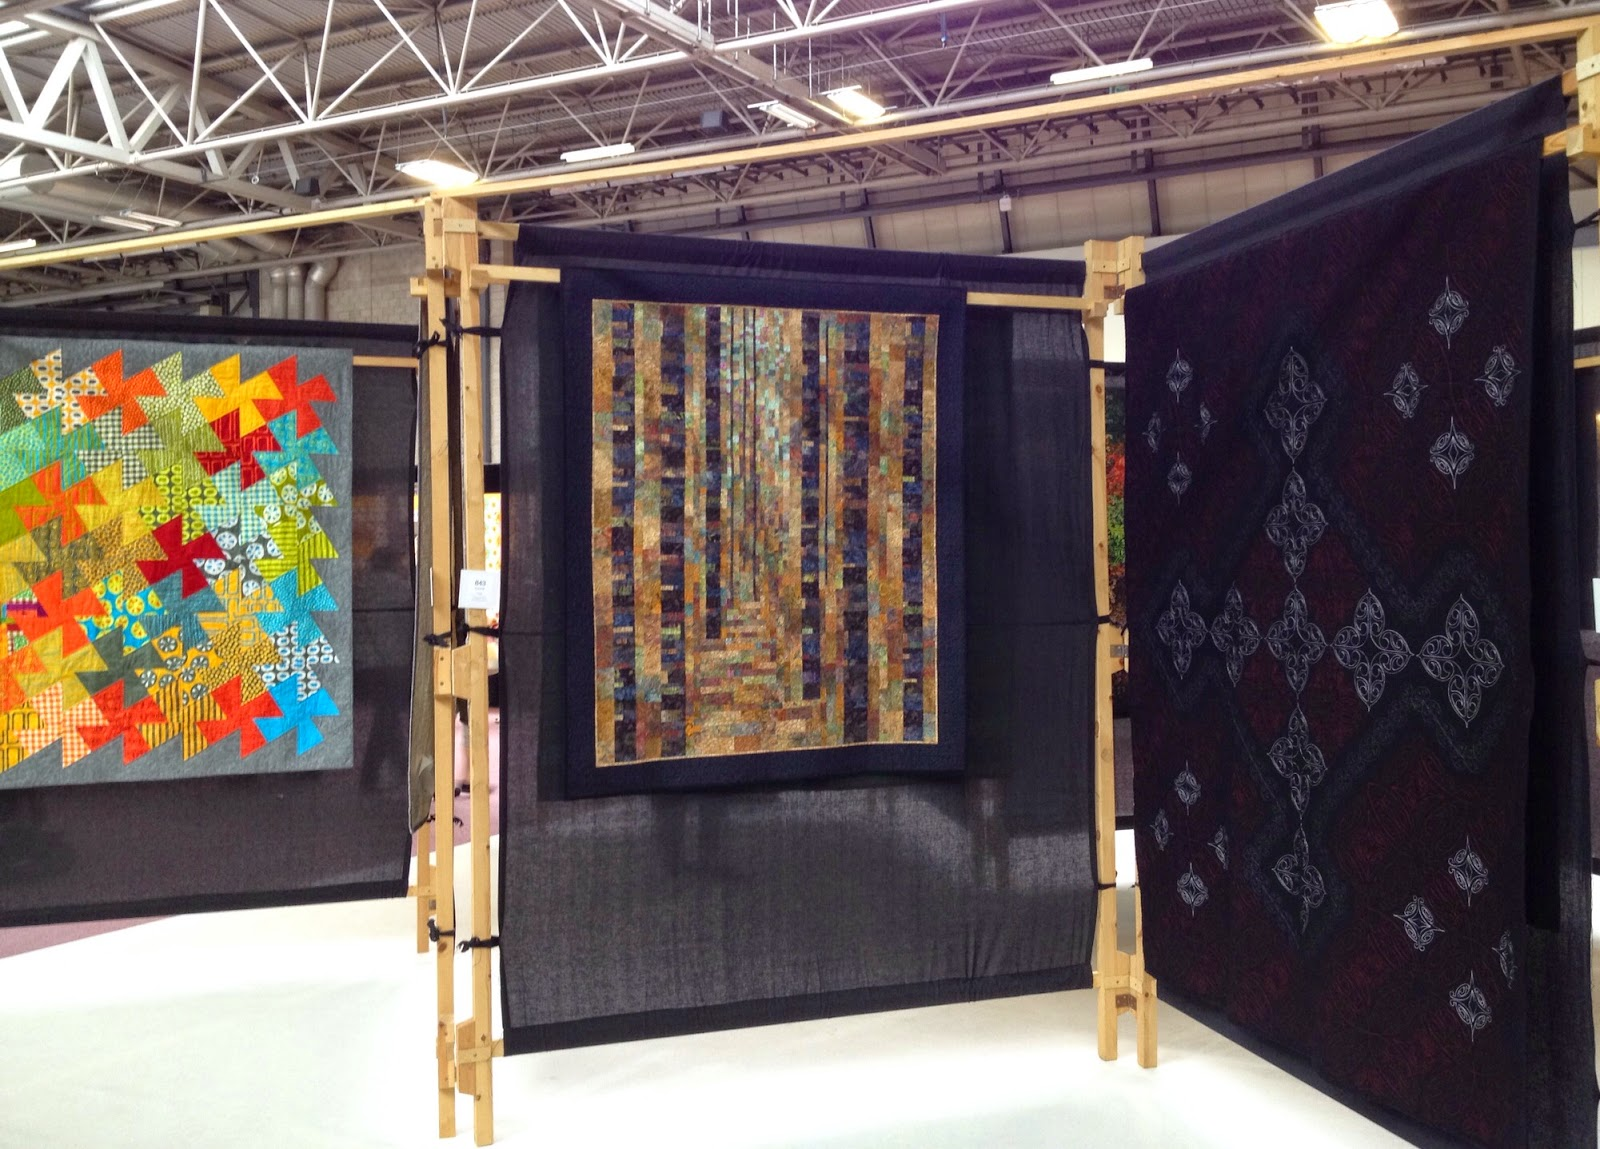 Ethelda 39 s quilting journal festival of quilts 2014 for Festival of quilts birmingham 2016